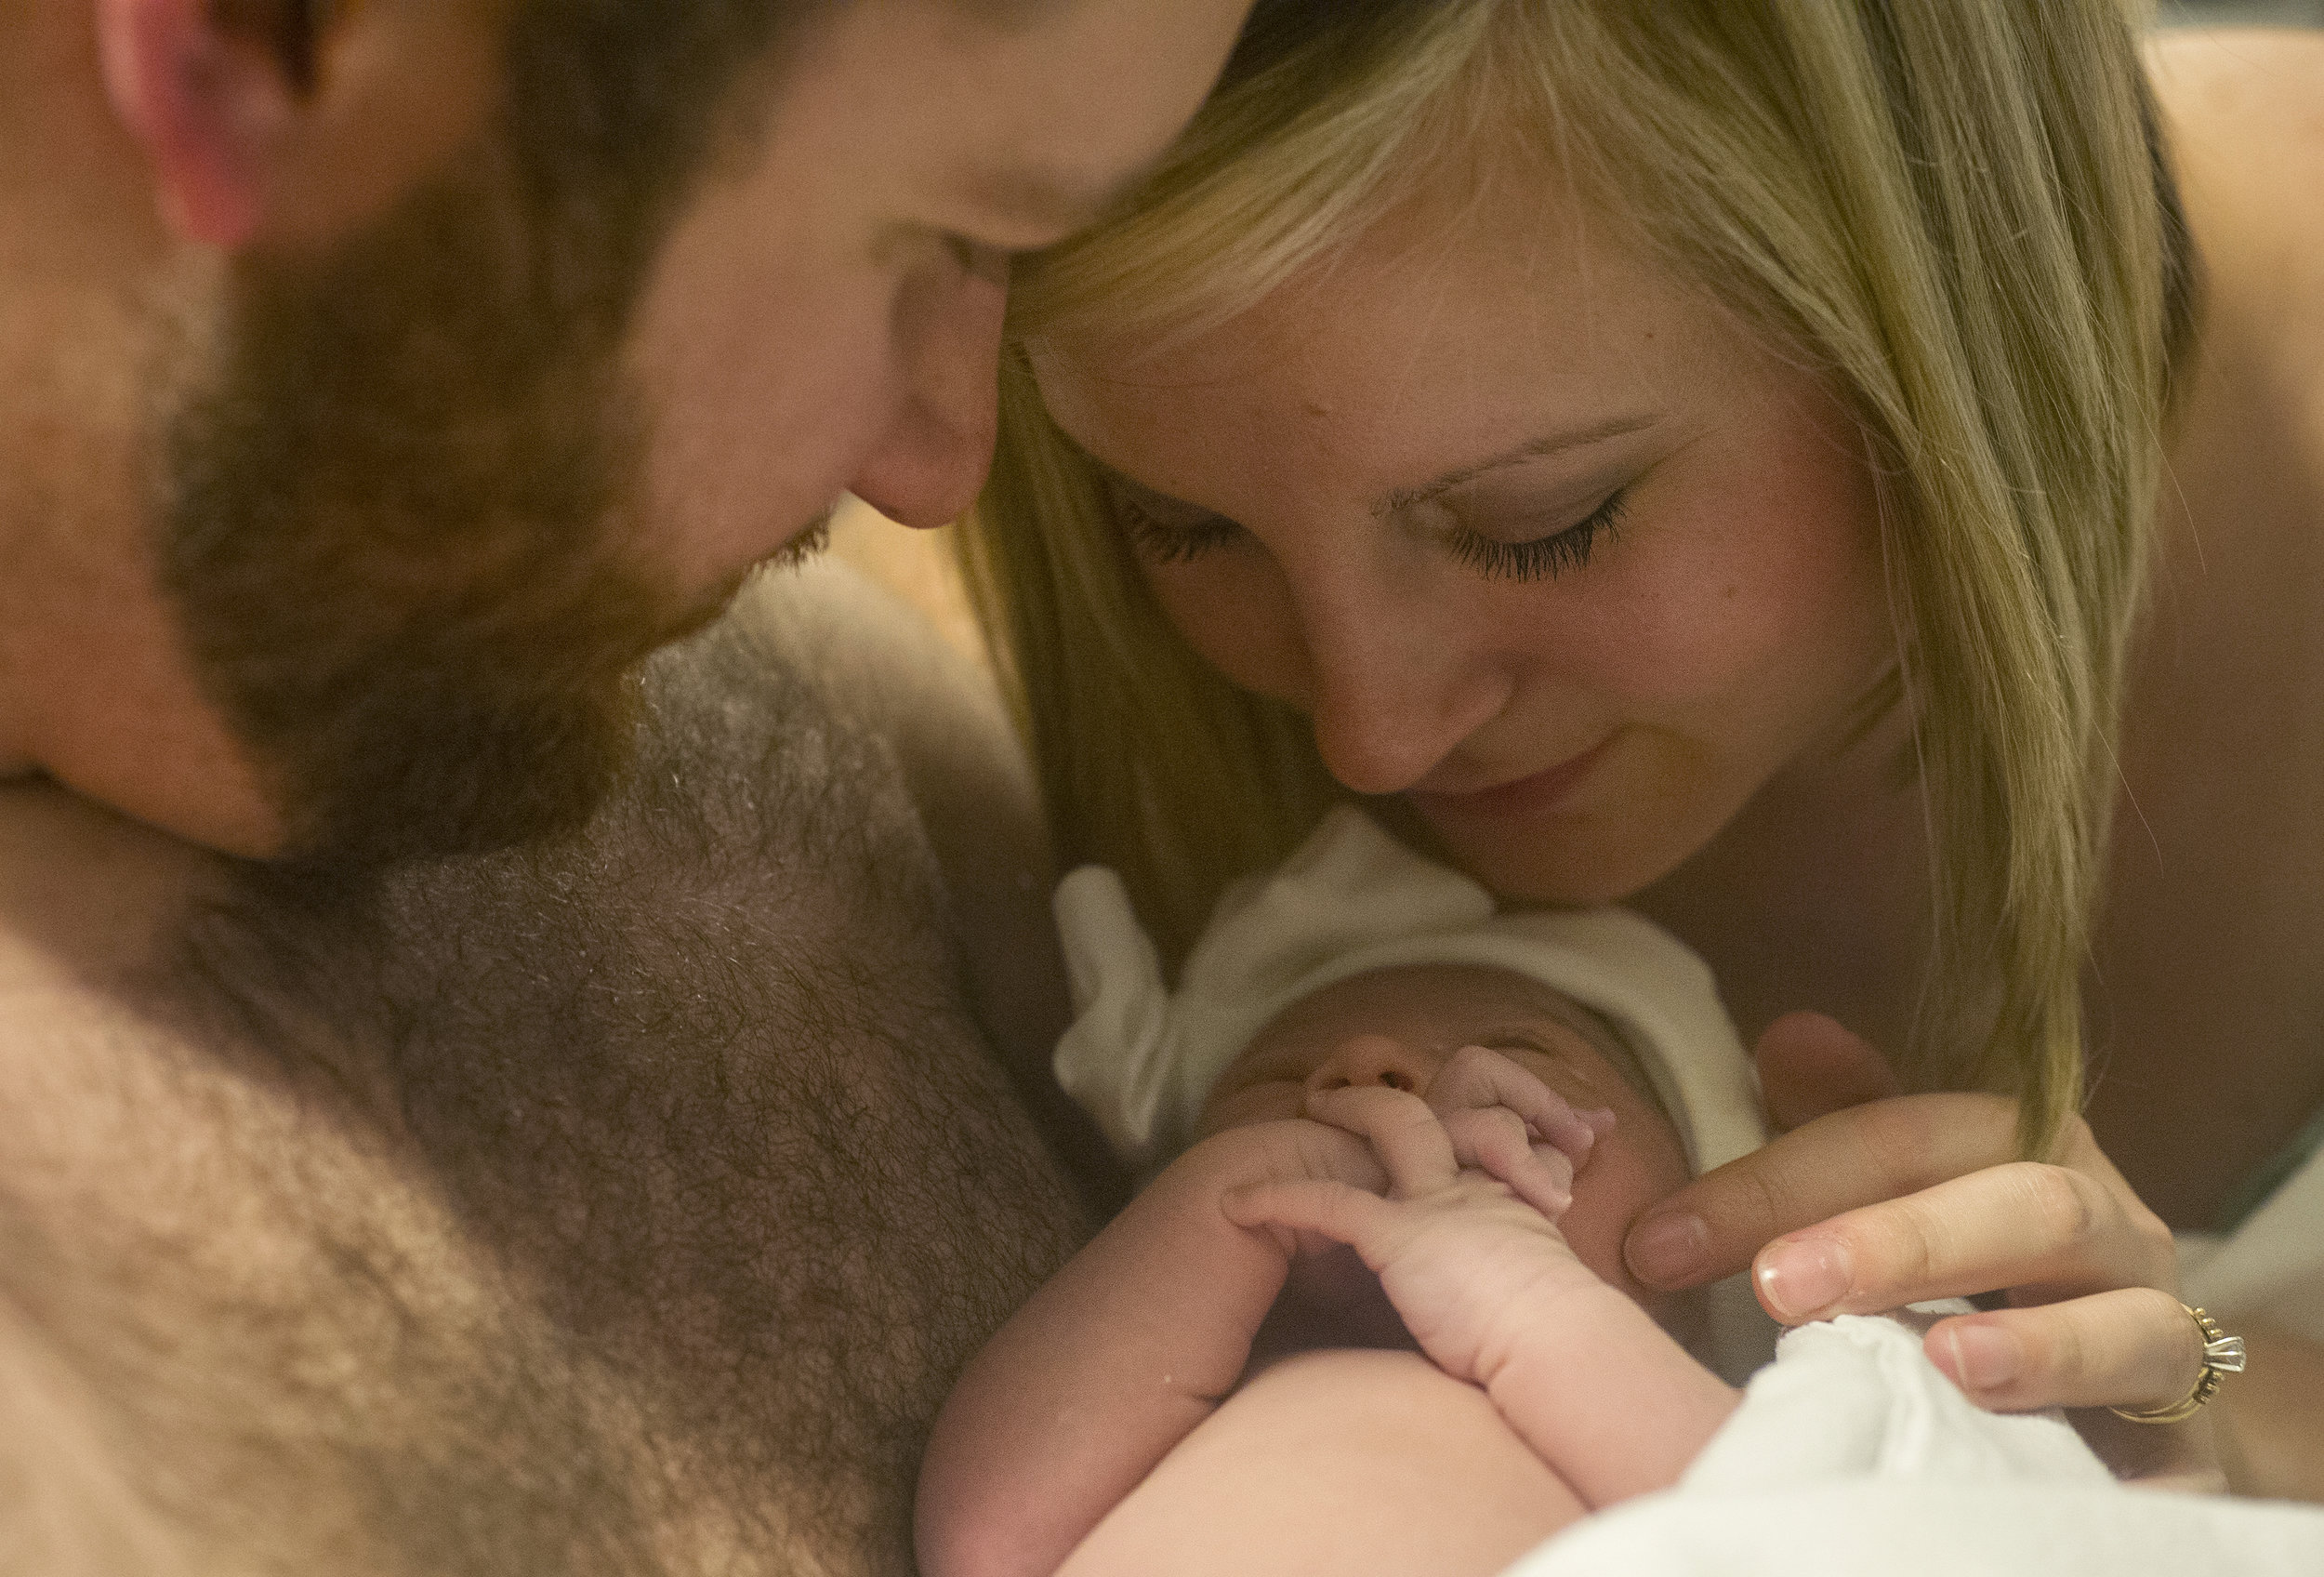 Michael and Erickia hold their daughter skin-to-skin together for the first time after she is born at St. Mary's Medical Center in Evansville Monday Dec. 1, 2014.